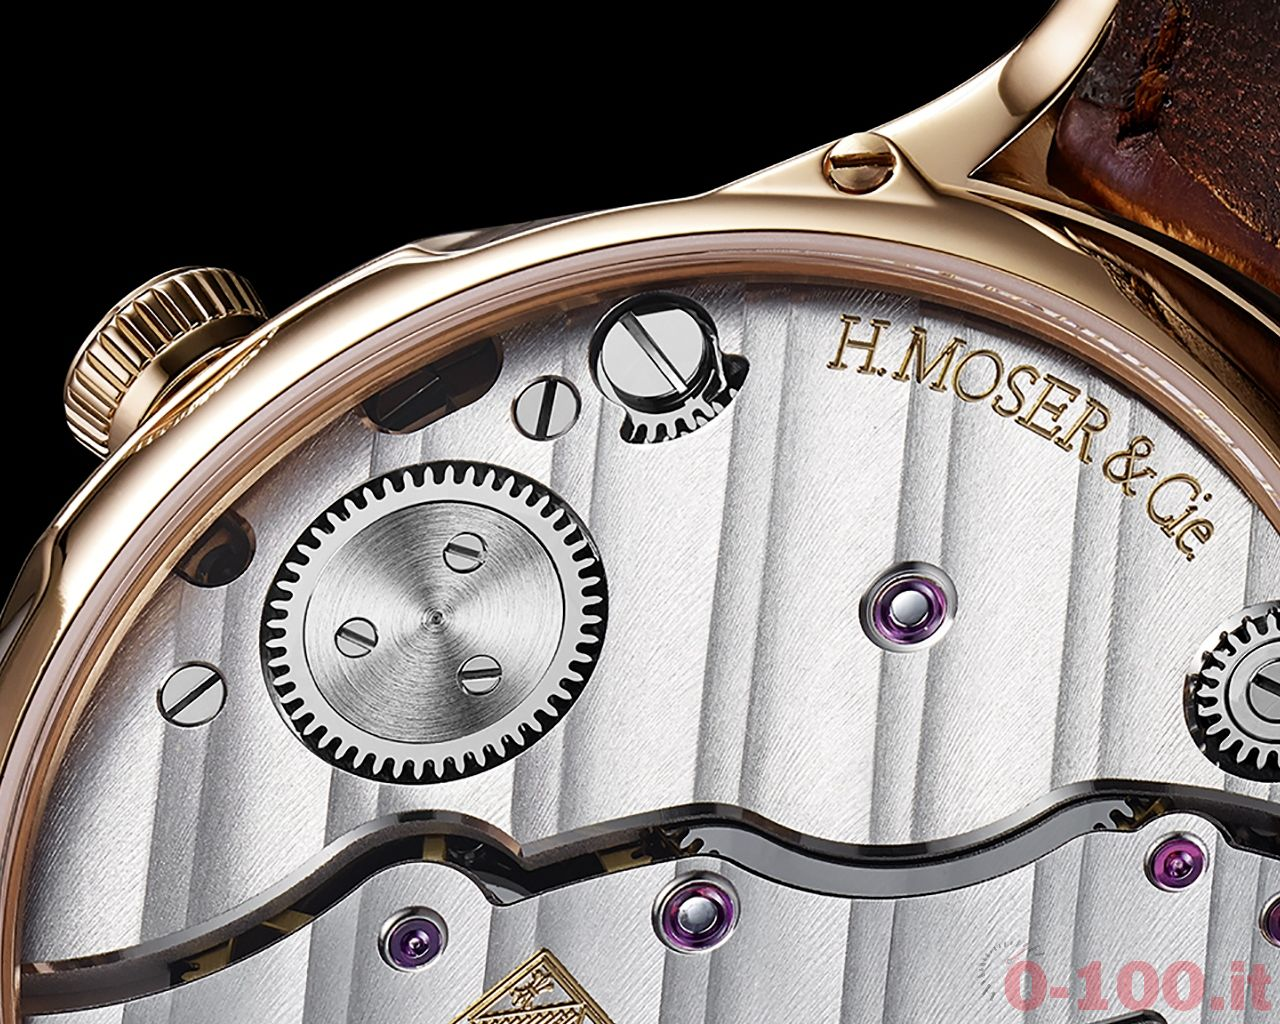 Baselworld-2014-H. Moser & Cie Venturer Small Seconds _0-10025